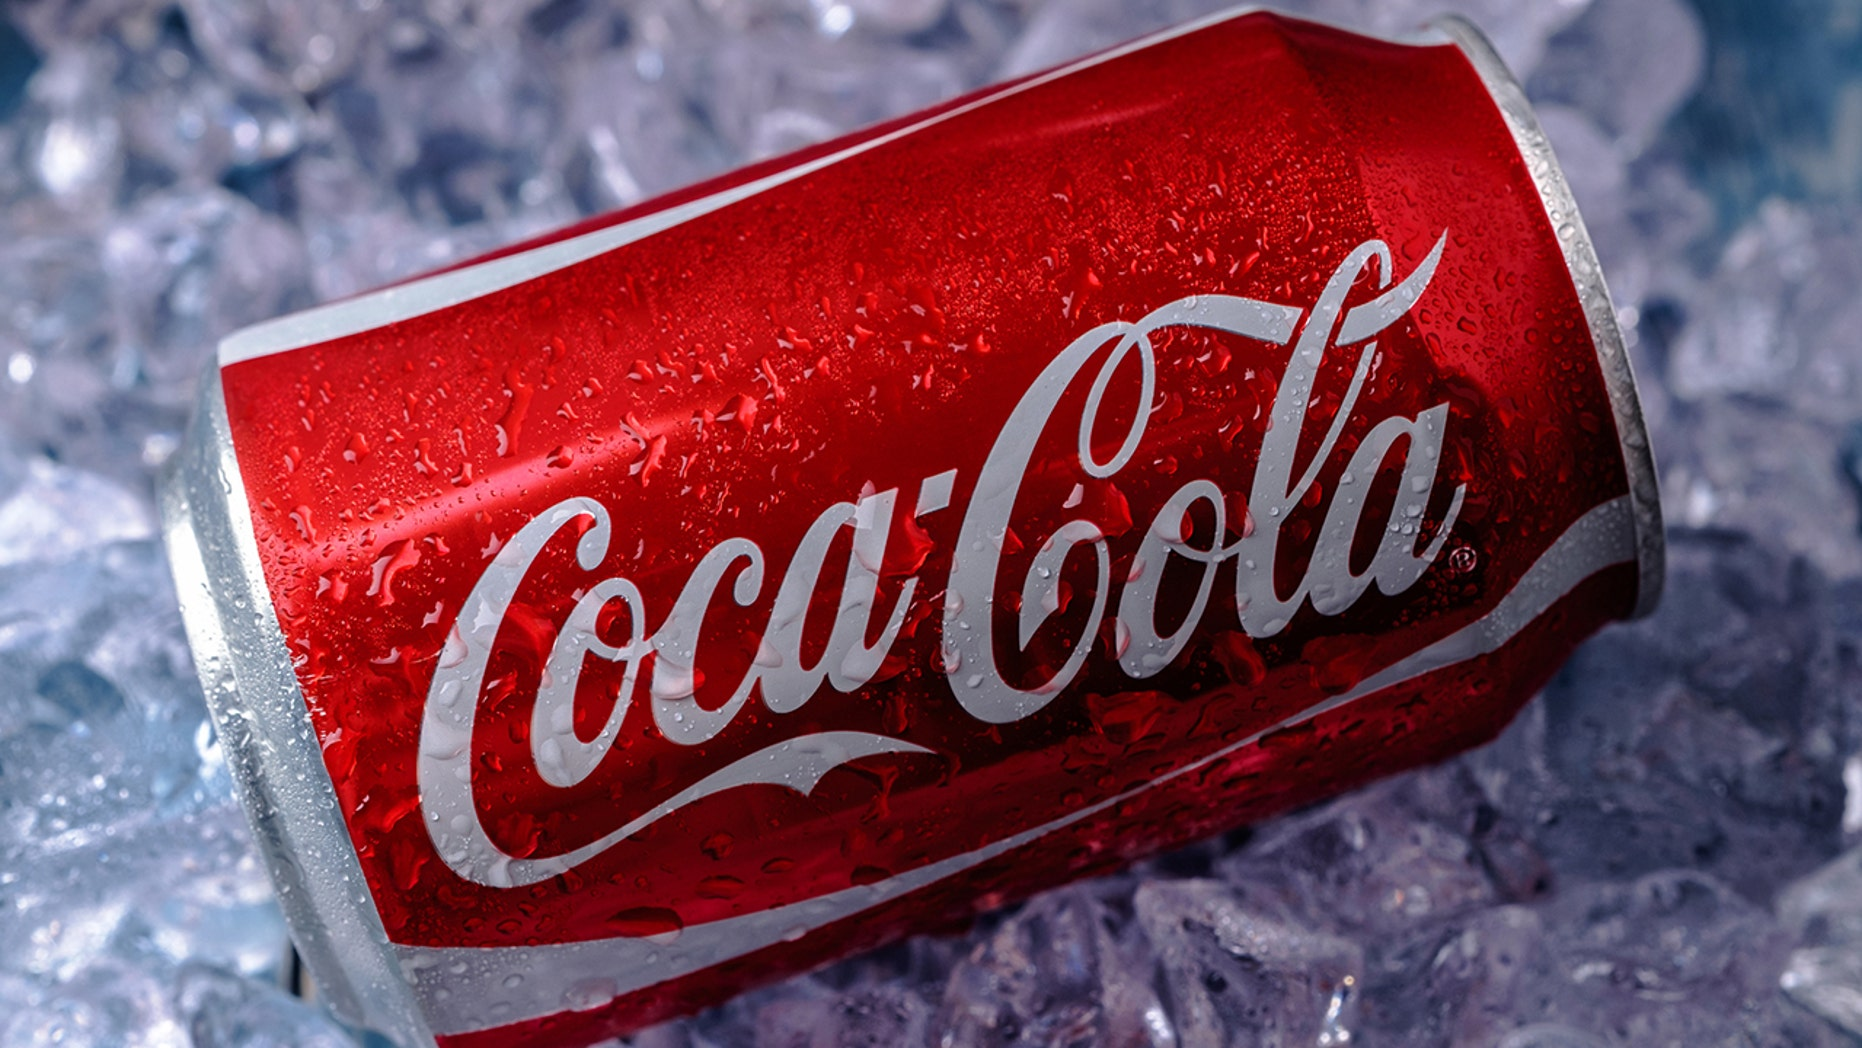 With soda sales down, the pressure is on for beverage companies to find alternative sweetners.